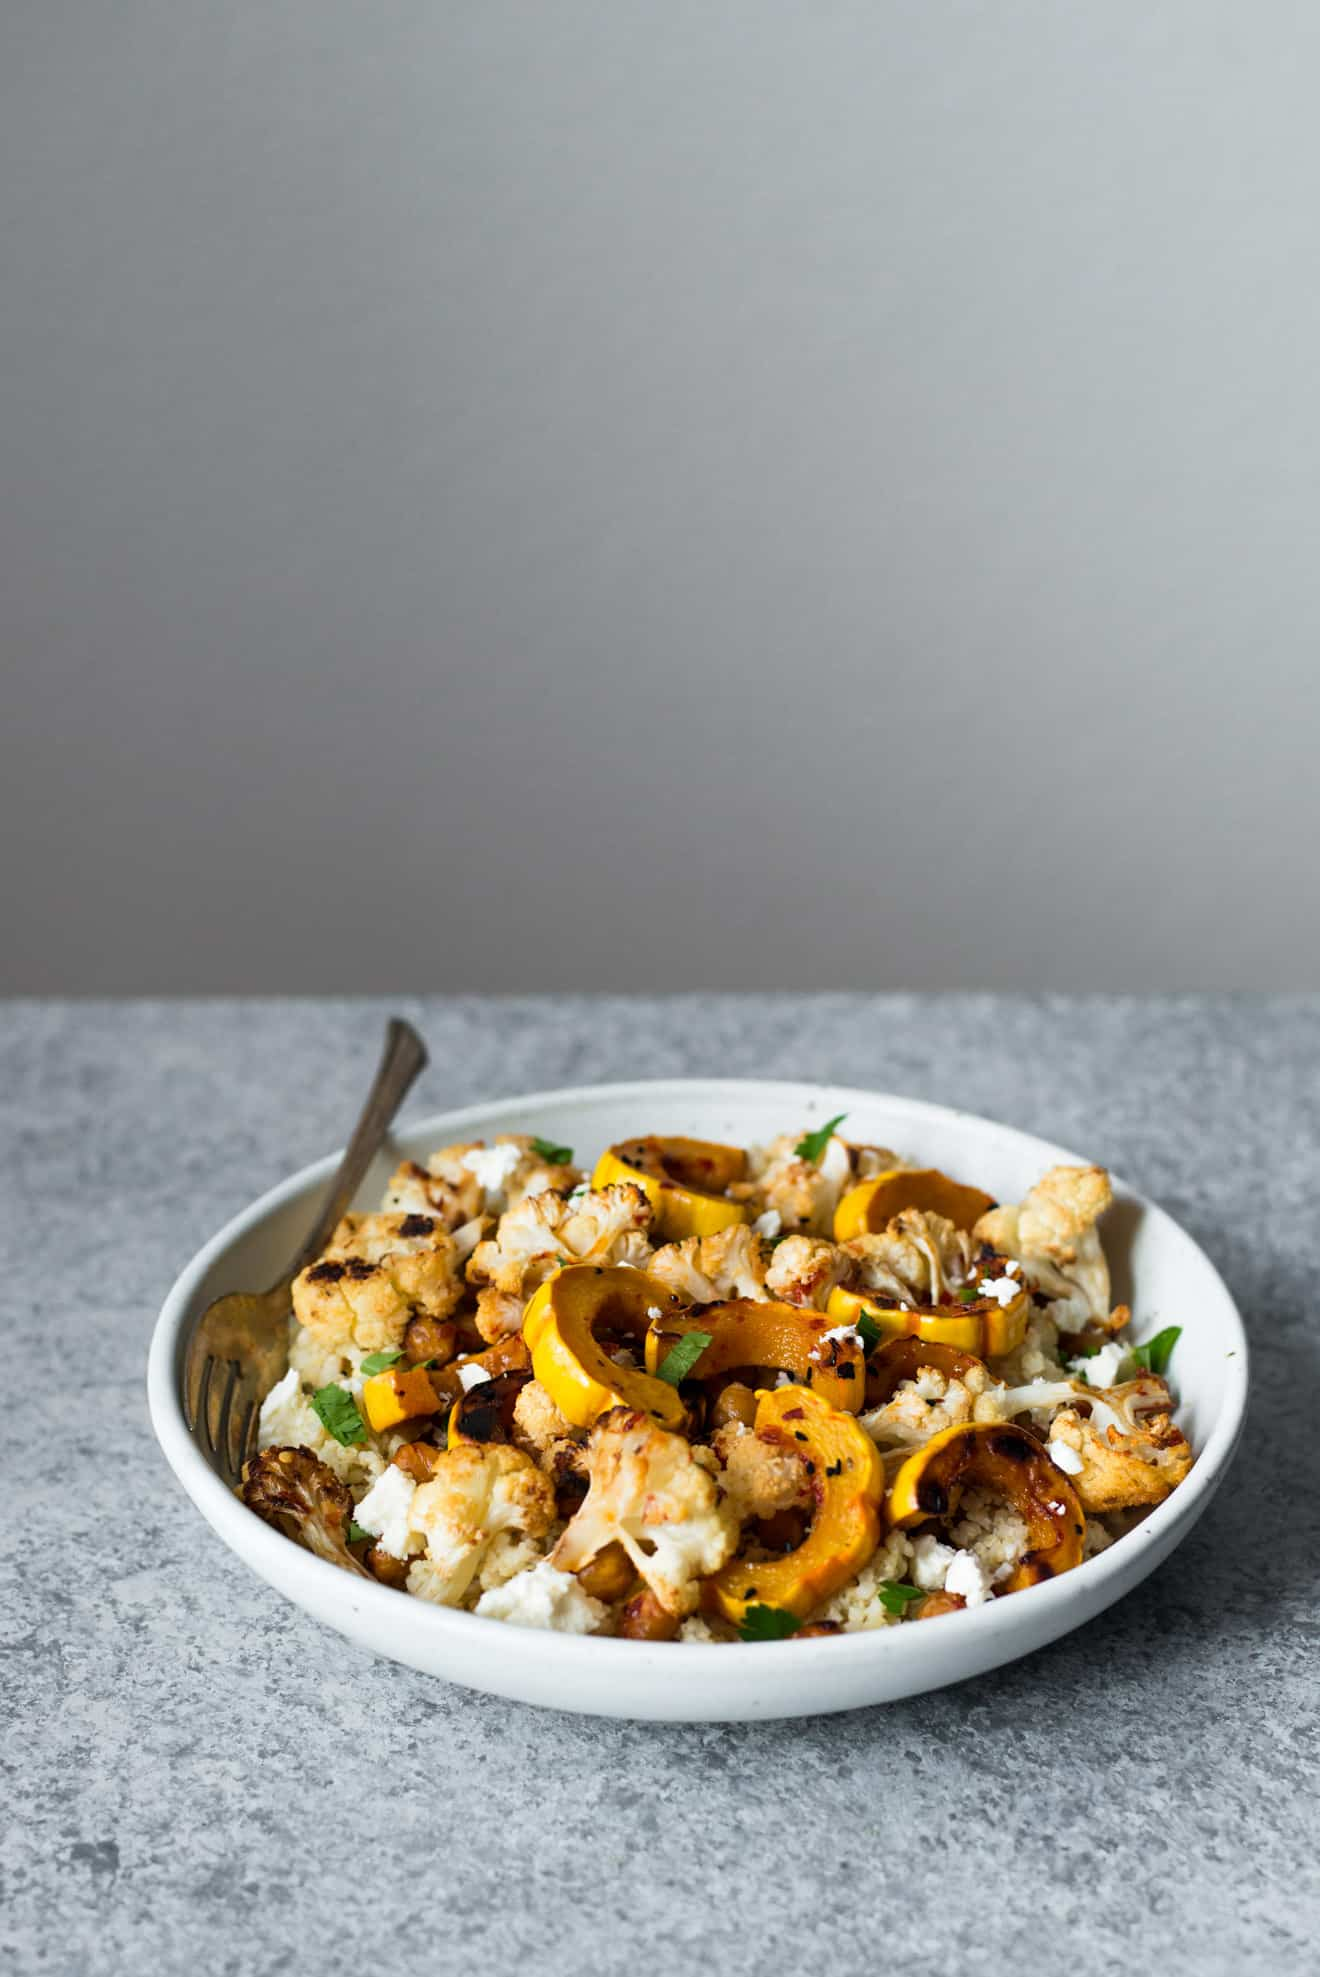 This Harissa Roasted Cauliflower with Delicata Squash & Chickpeas is a ...